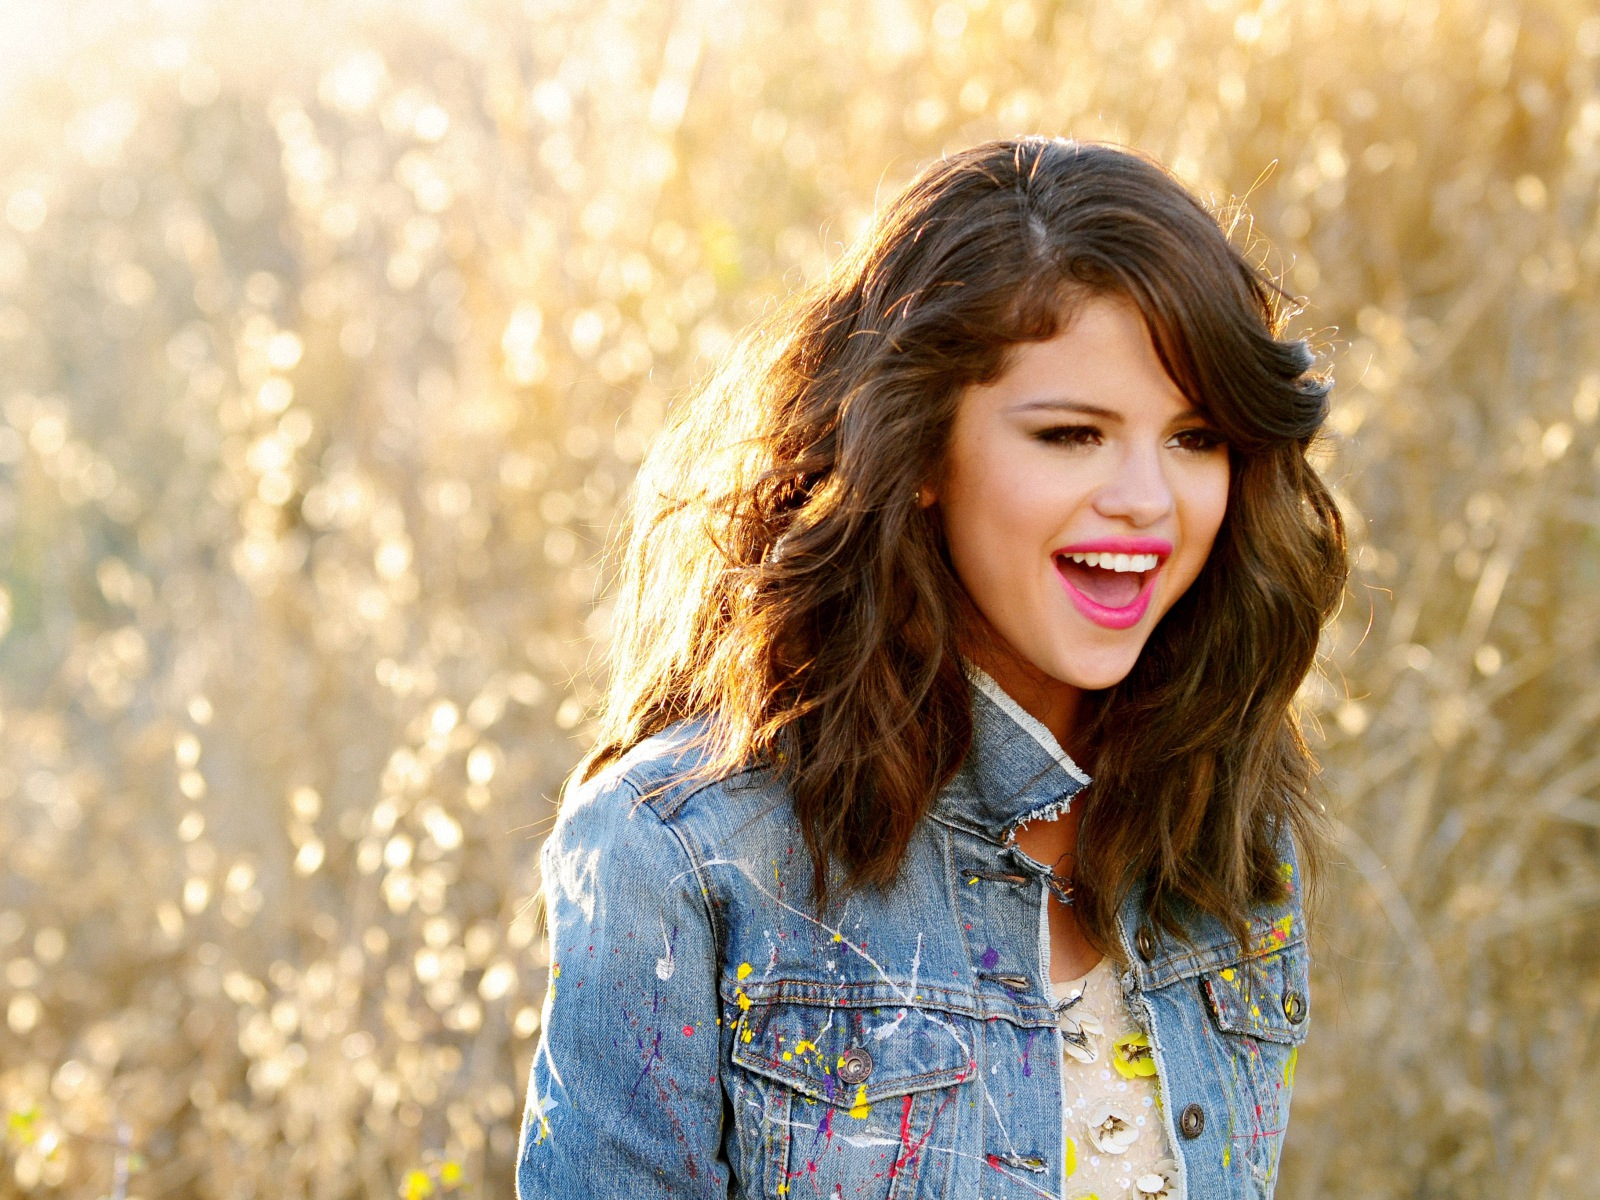 Download Selena Gomez Smiling Face Pose Background Computer Hd Free Photos